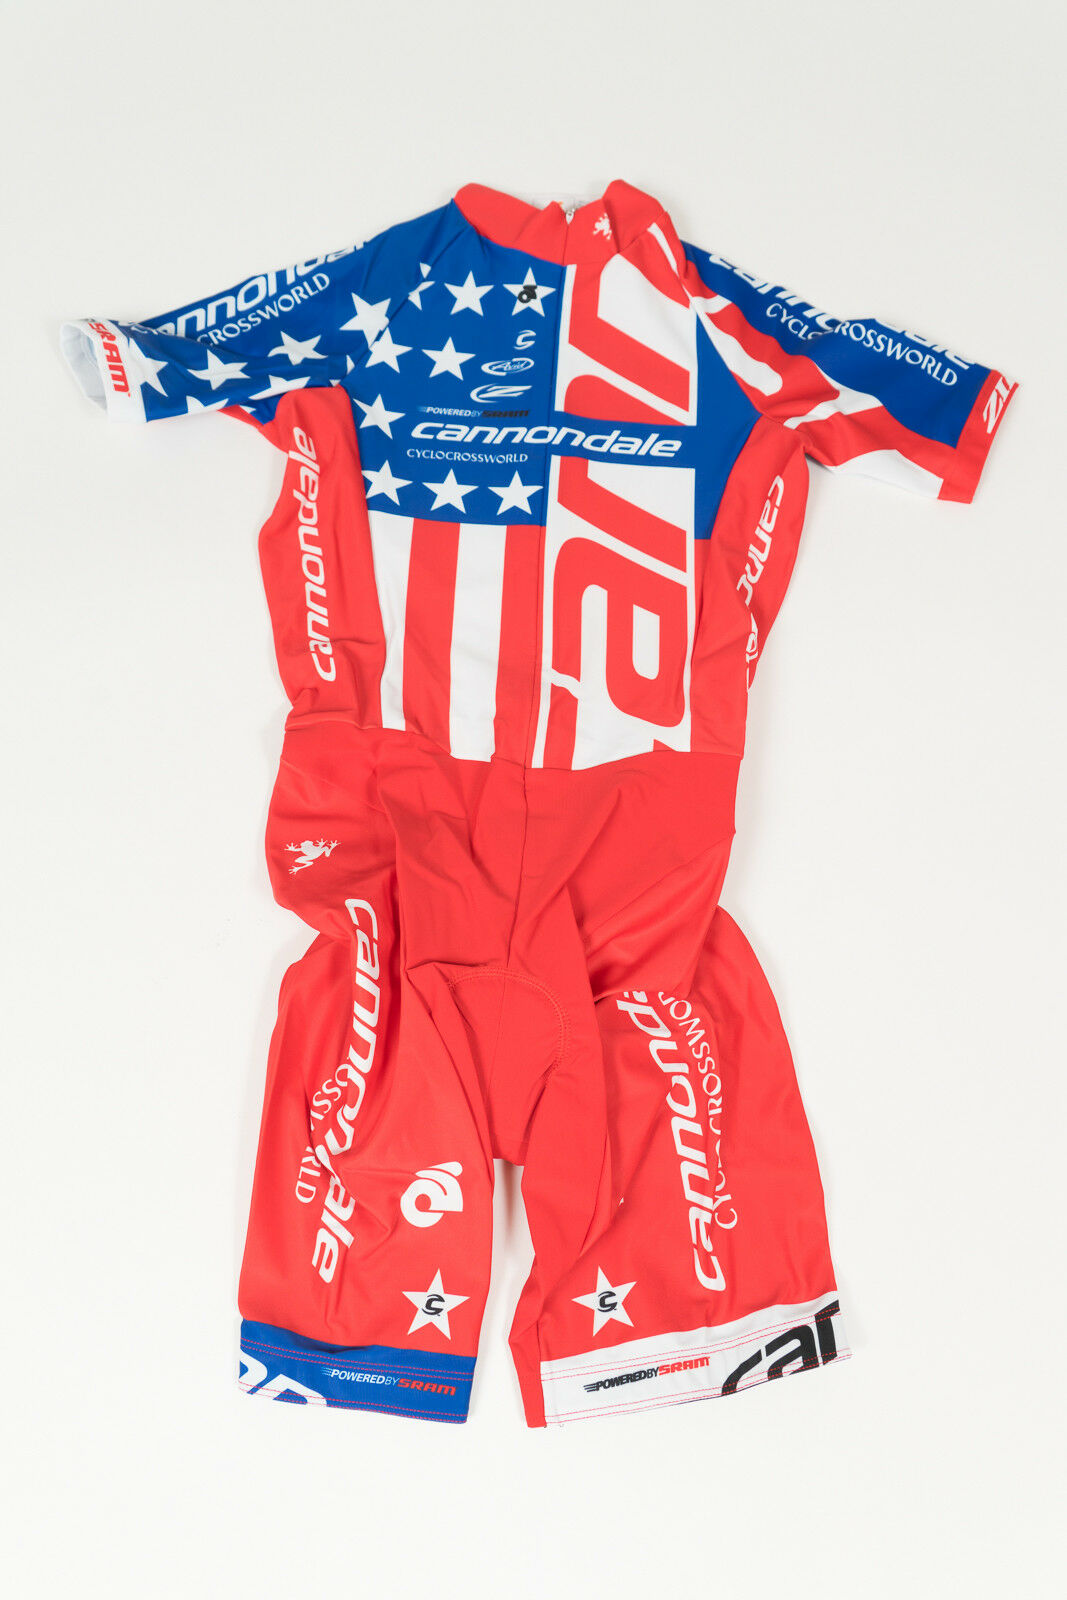 New 2017 Women's Champ Sys Cannondale CX Nat'l Champ SS Skinsuit, Red, XS